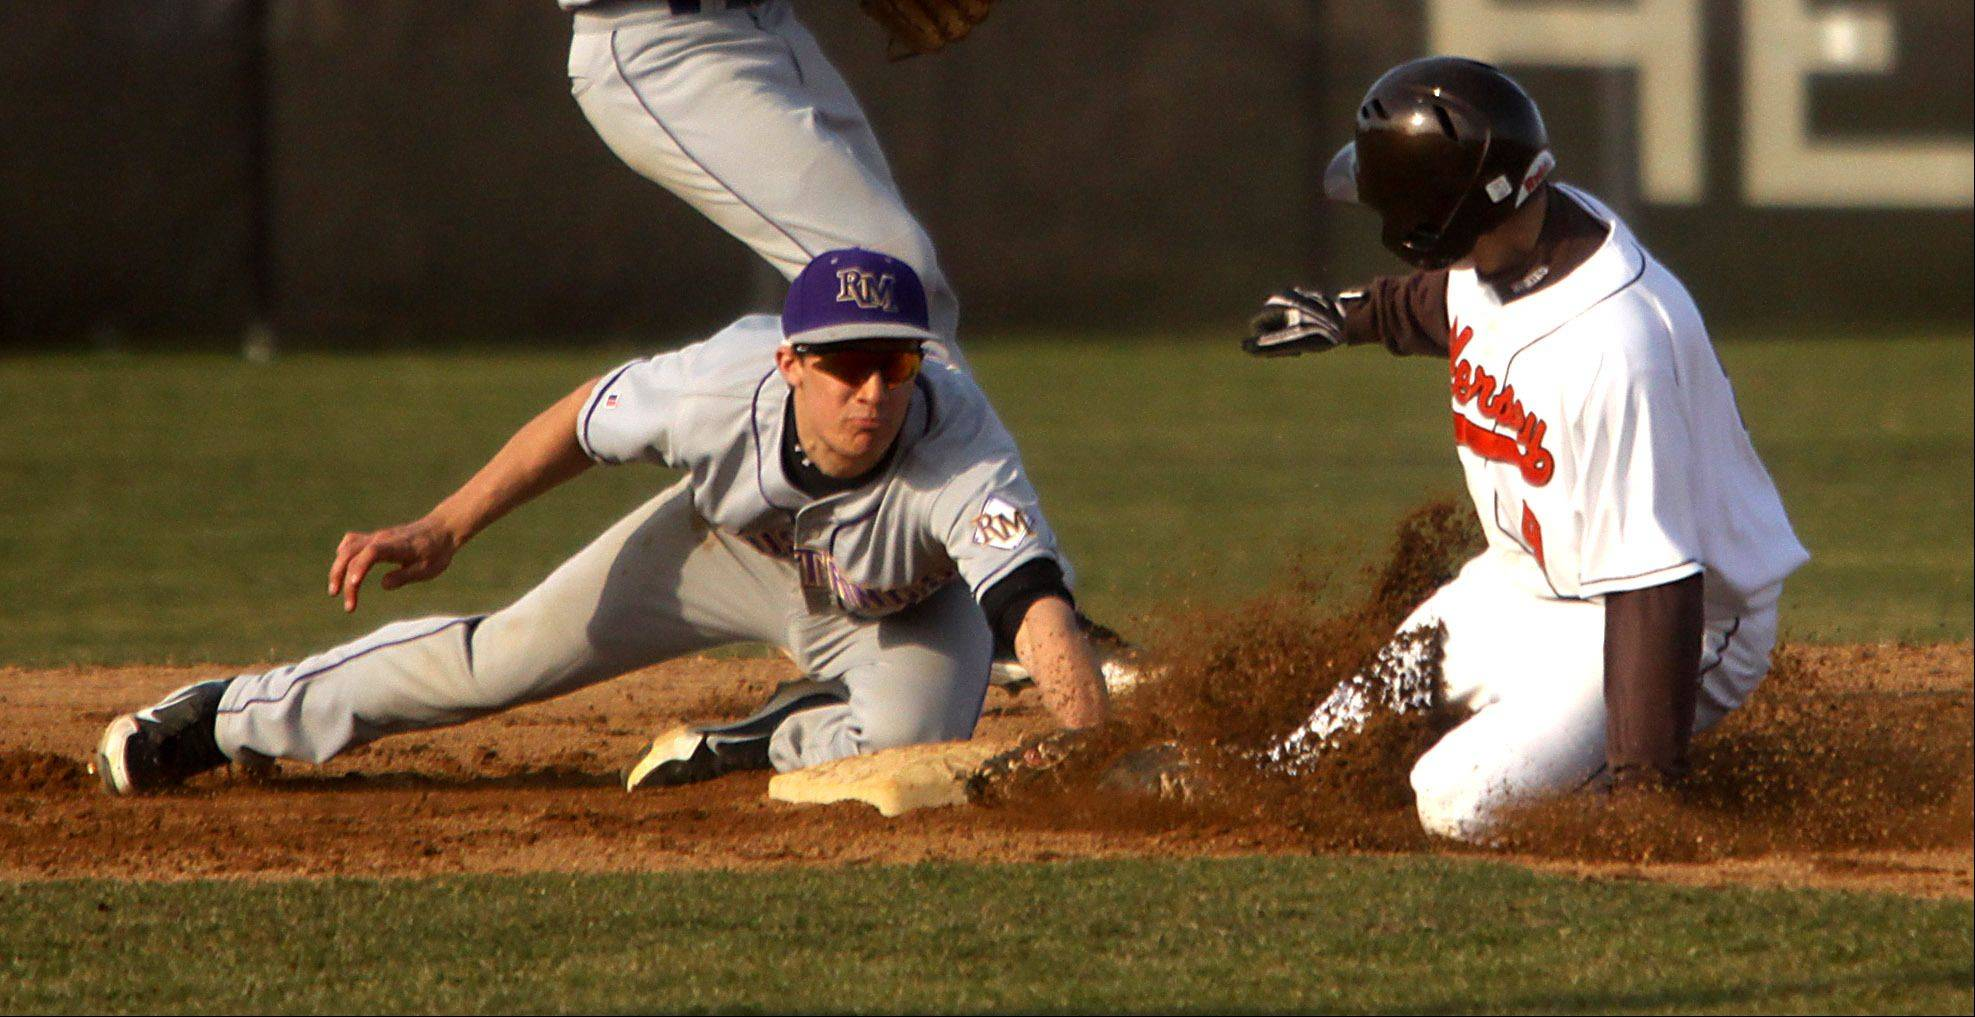 Rolling Meadows' Zach Schultz, left, tags out Hersey's Jake Yager on an attempted steal of second base at Hersey on Monday.